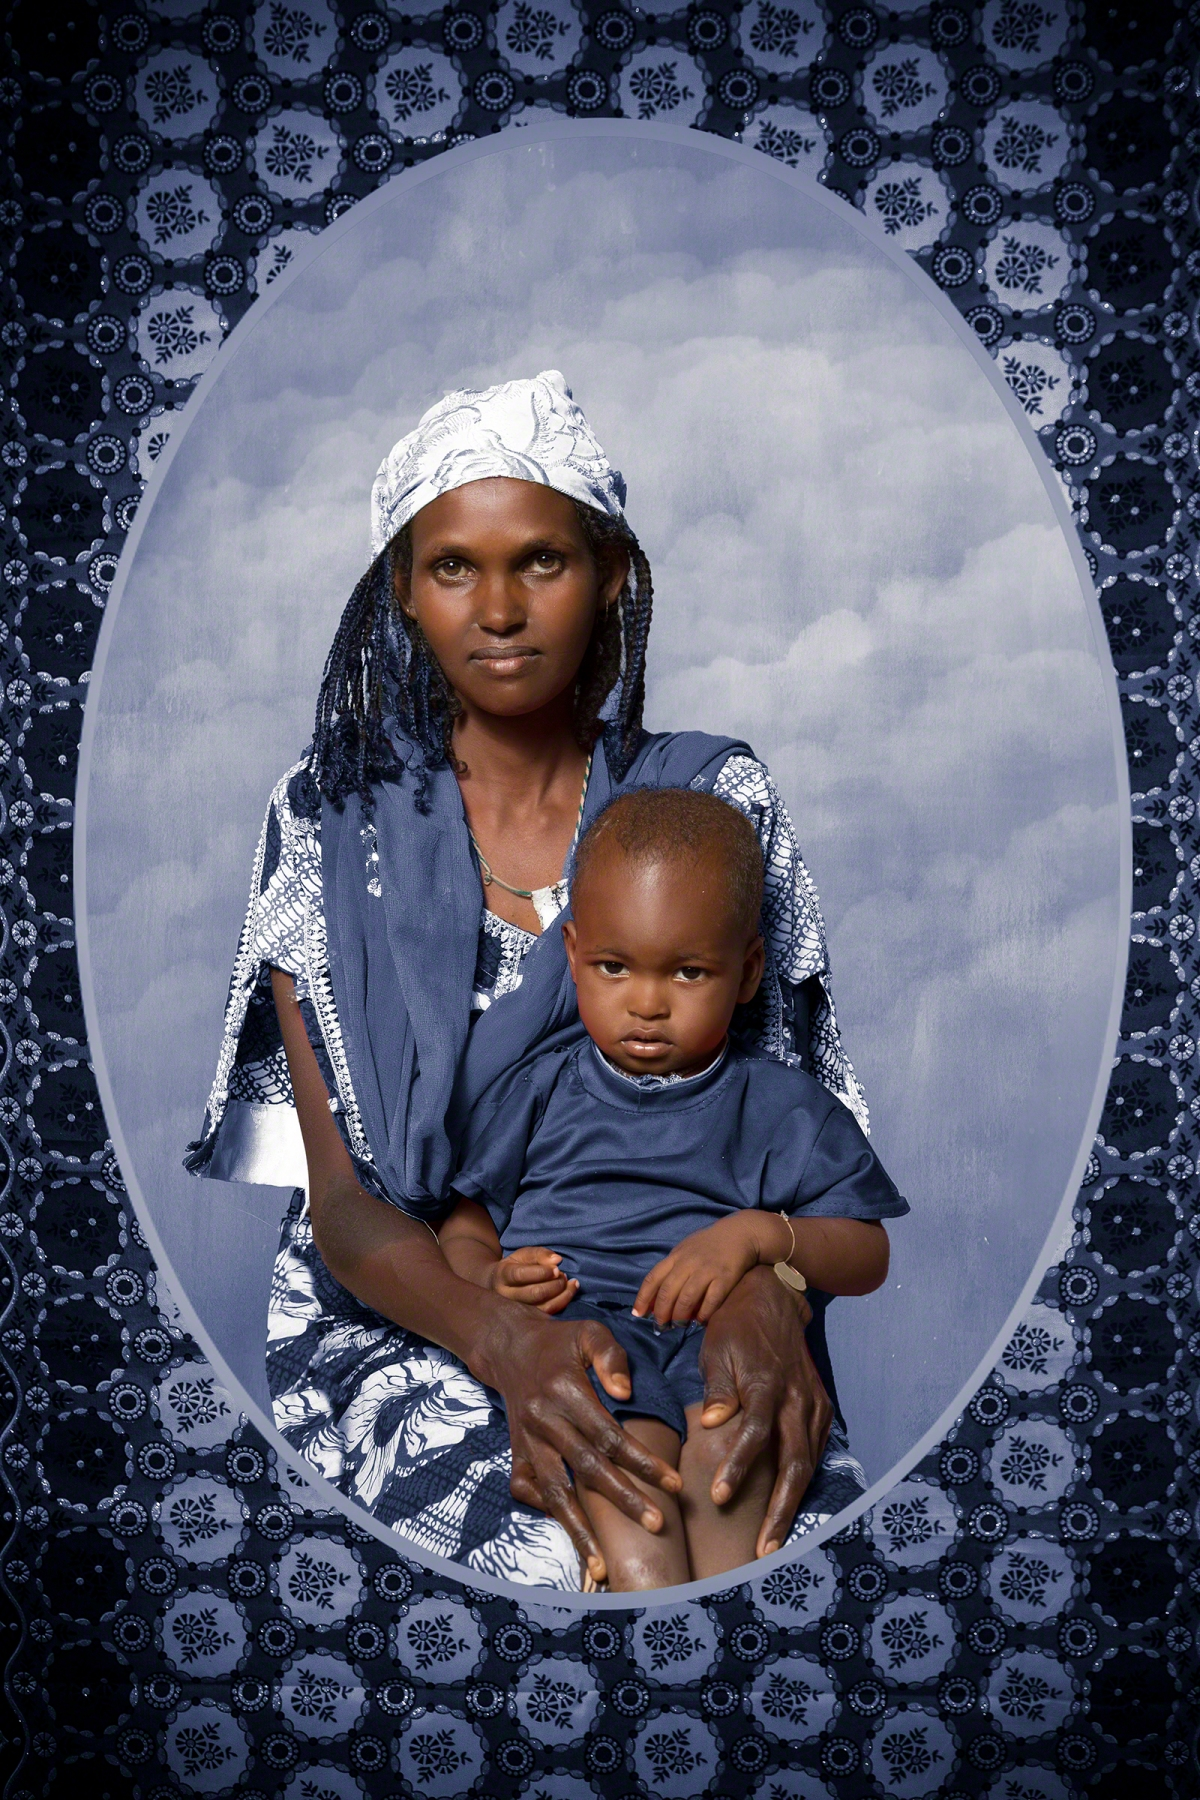 A photograph of a mother named Hawa and her infant son, Ibrahima.